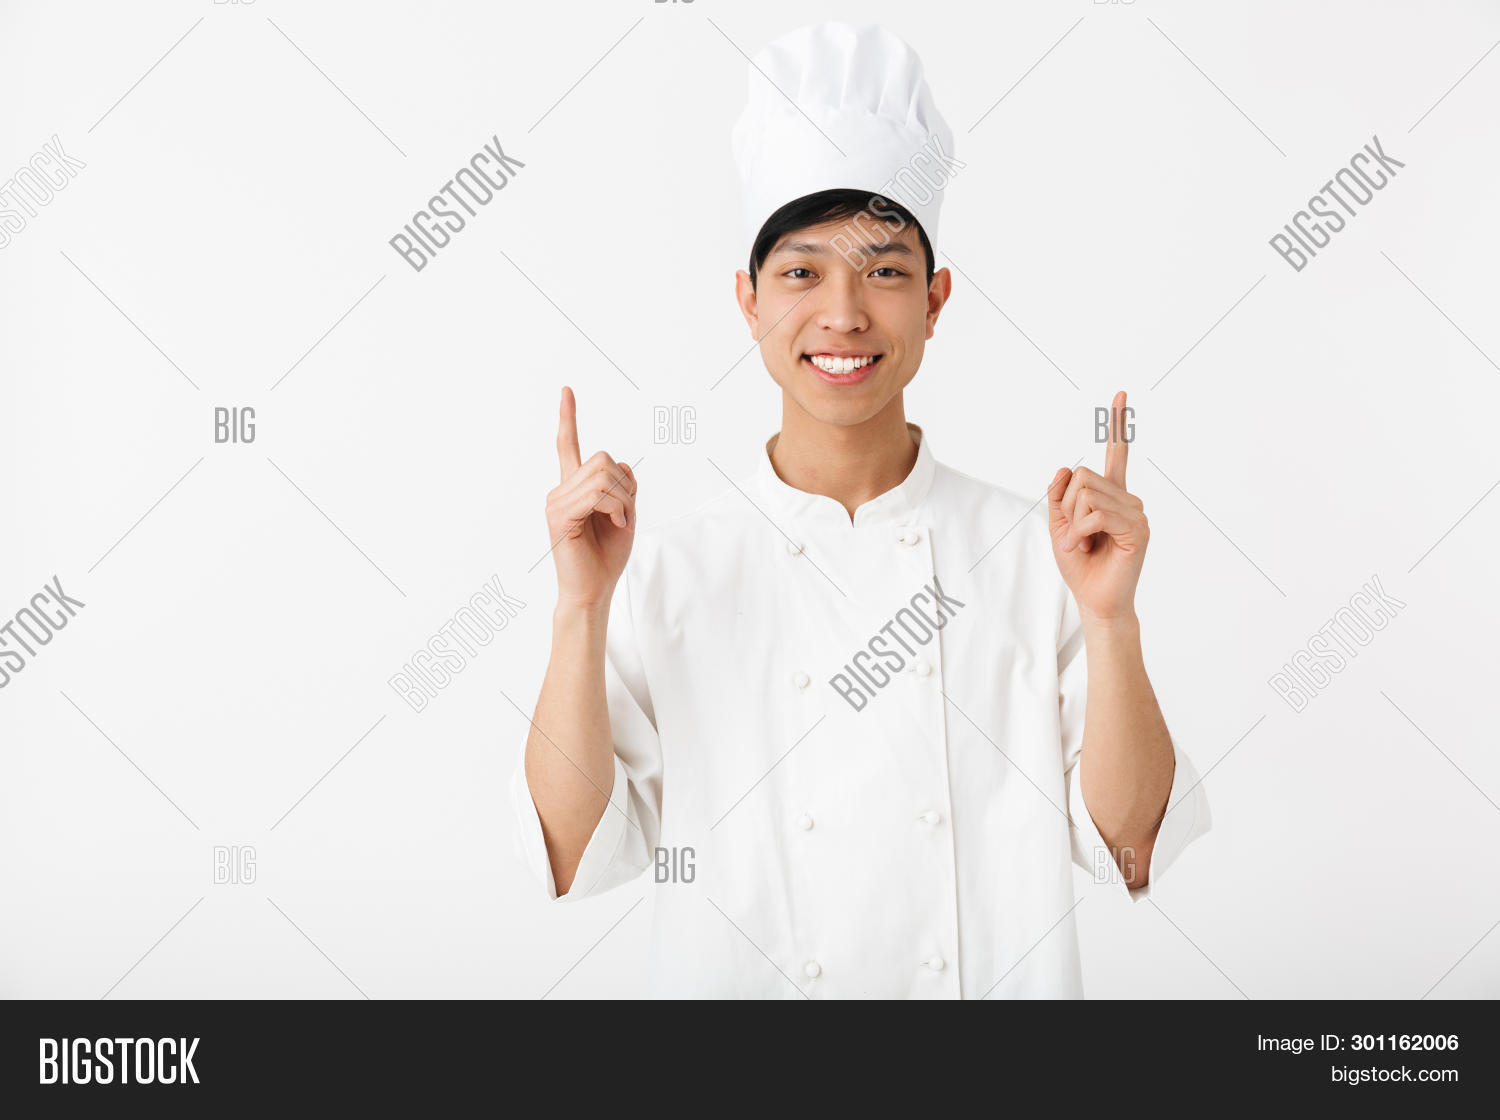 adult,advertising,american,apron,asian,background,career,cheerful,chef,chinese,concepts,cook,culinary,empty,gesturing,gourmet,guy,hand,happy,hat,india,isolated,job,male,man,mixed,occupation,people,person,plain,pointing,portrait,presenter,presenting,profession,professional,showing,smile,smiling,something,space,uniform,welcoming,white,worker,young